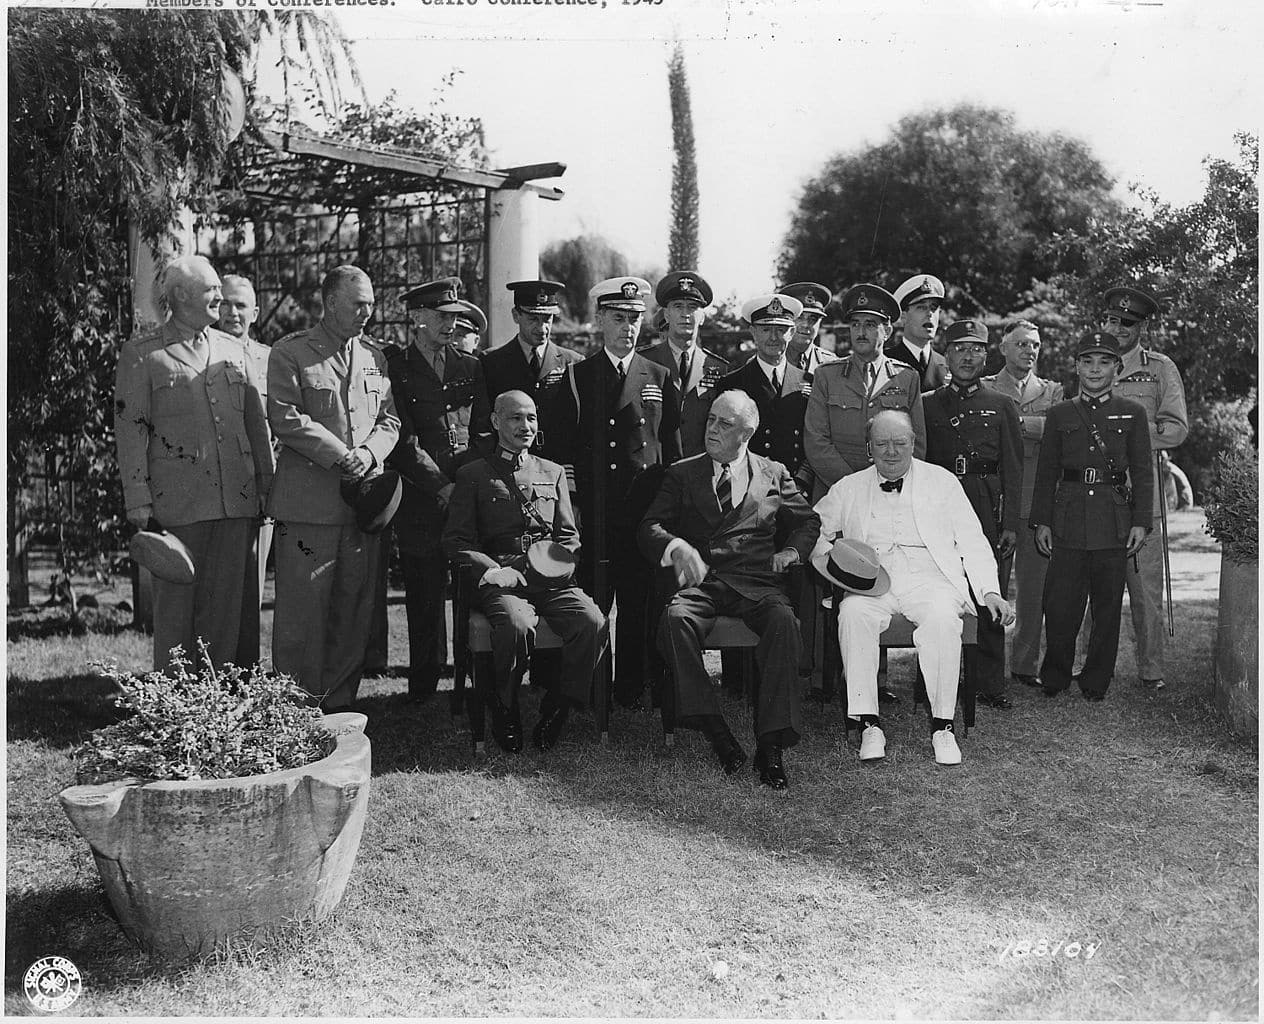 The Potsdam Conference - July 20th 1945 - Roosevelt, Churchill, and Chinese leader Chiang Kai Shek at the Cairo Conference in 1943